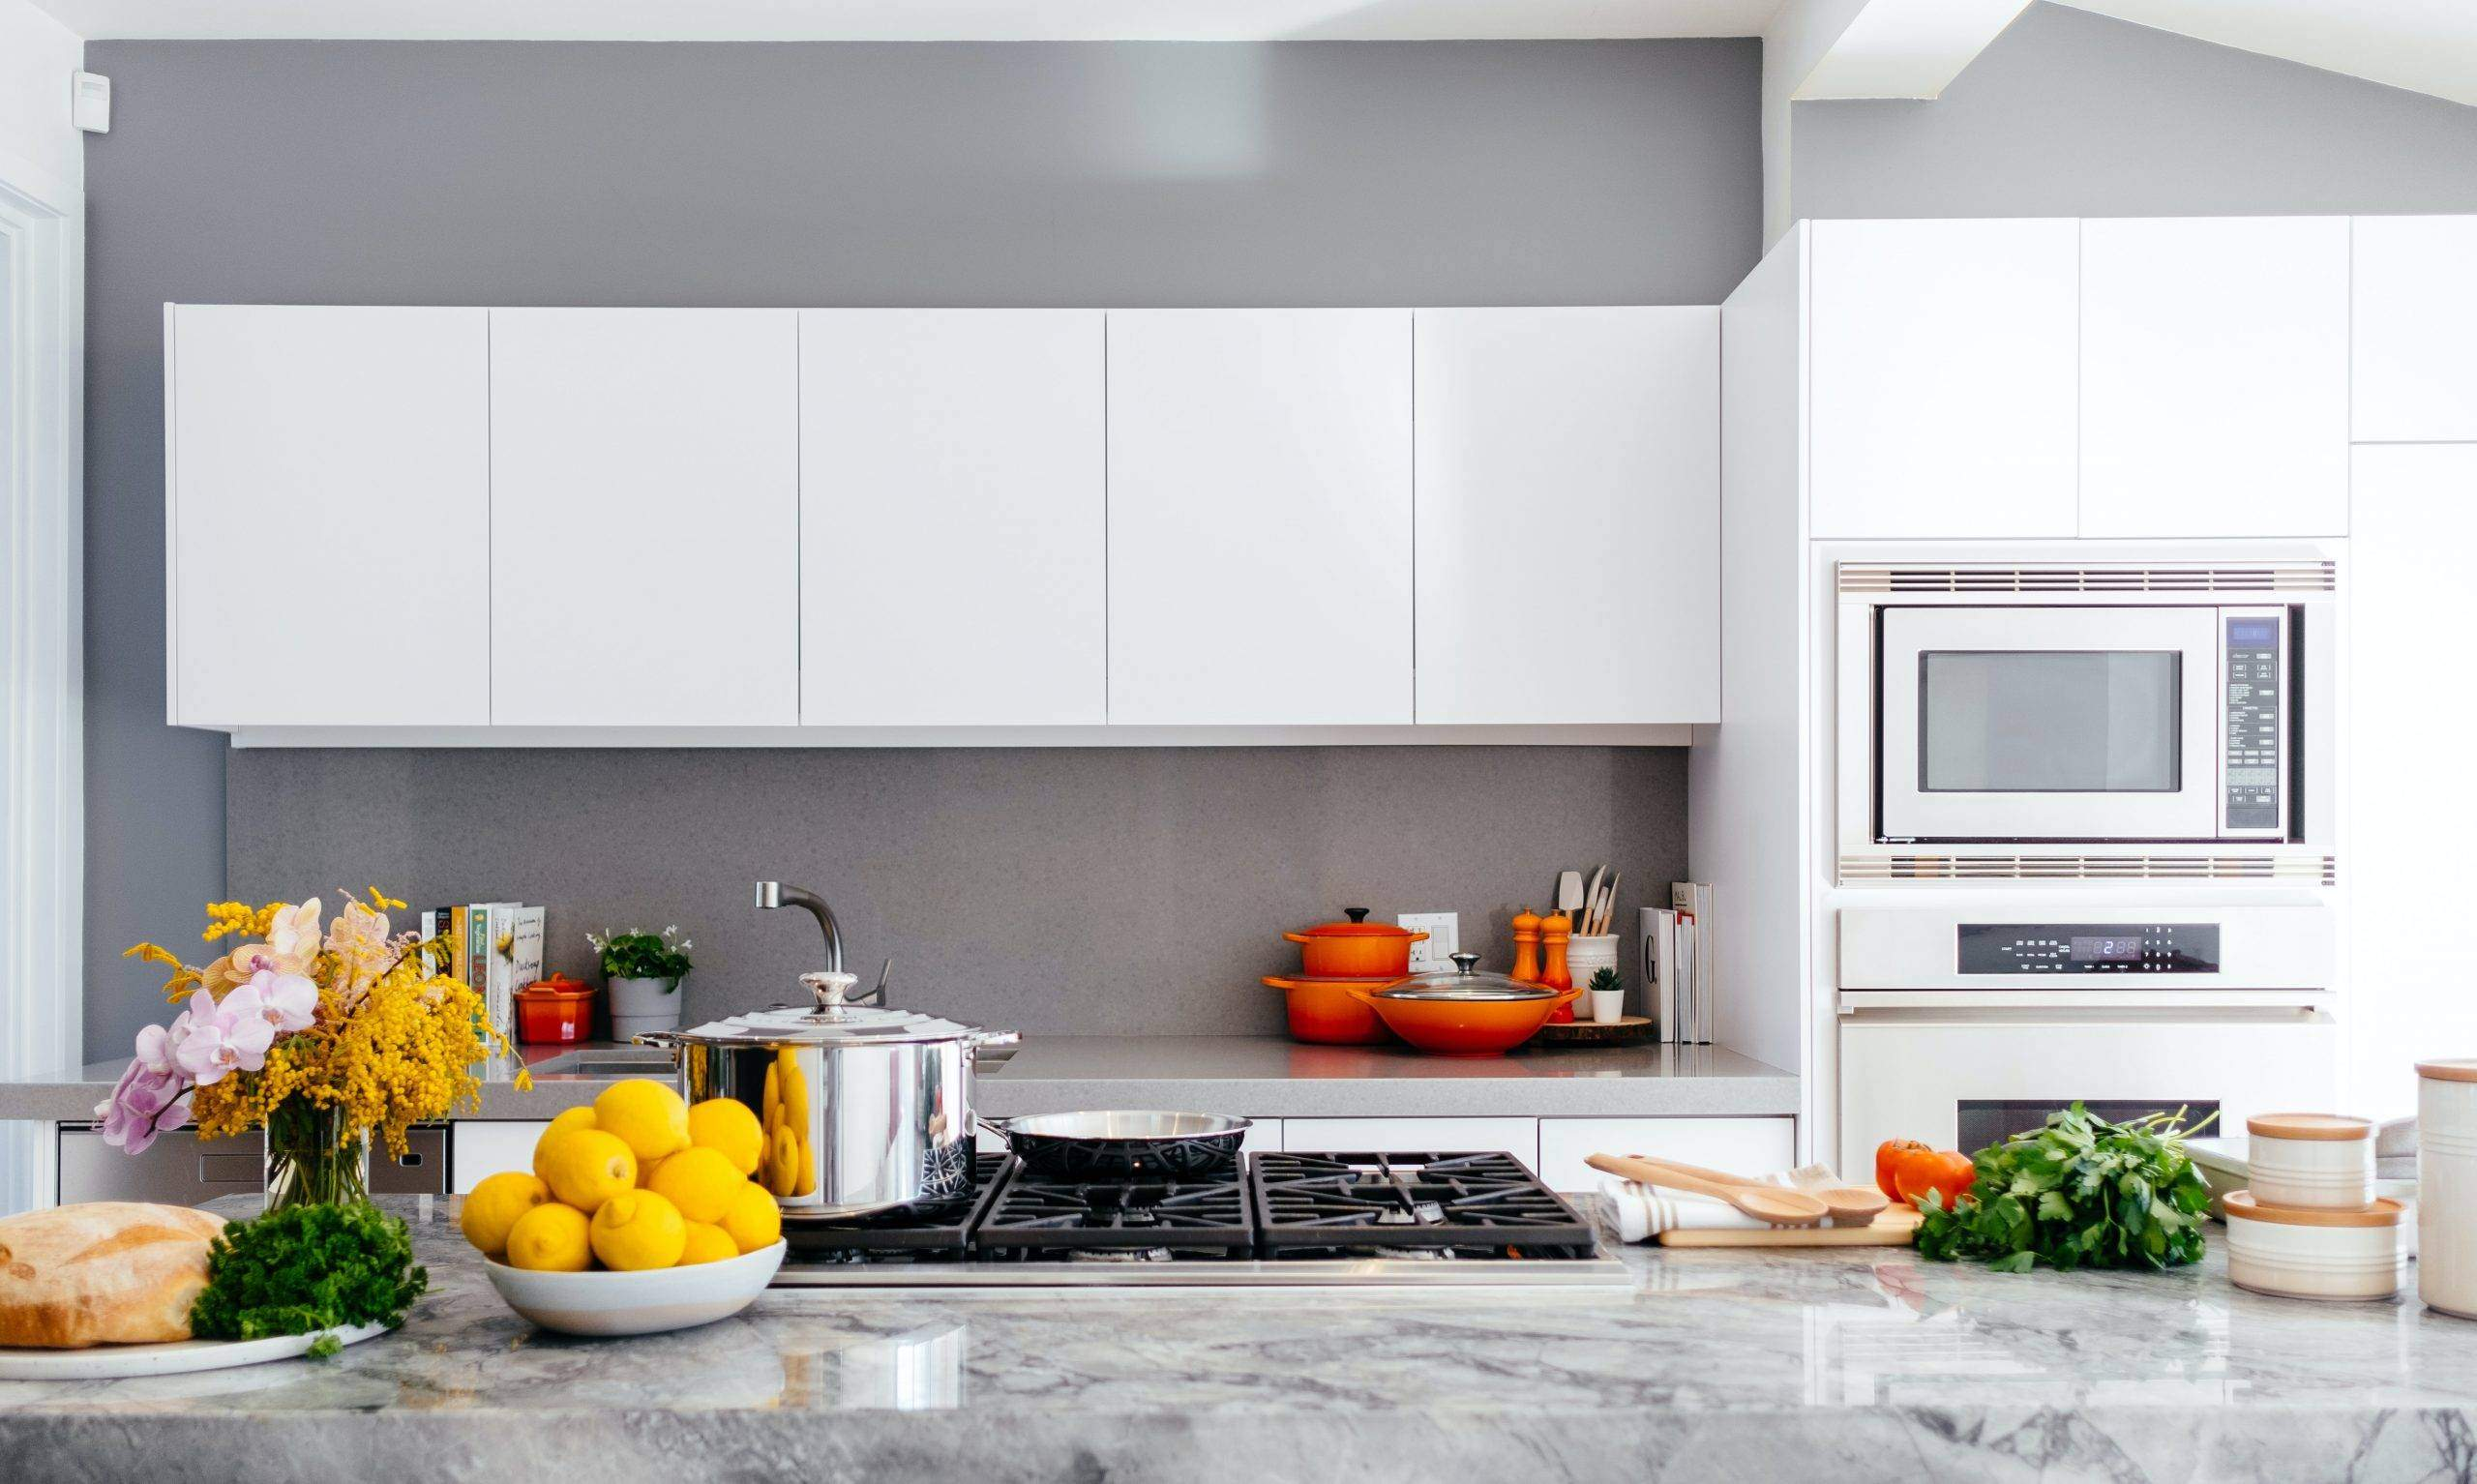 The Most Popular Kitchen Trends For 2021 Revealed